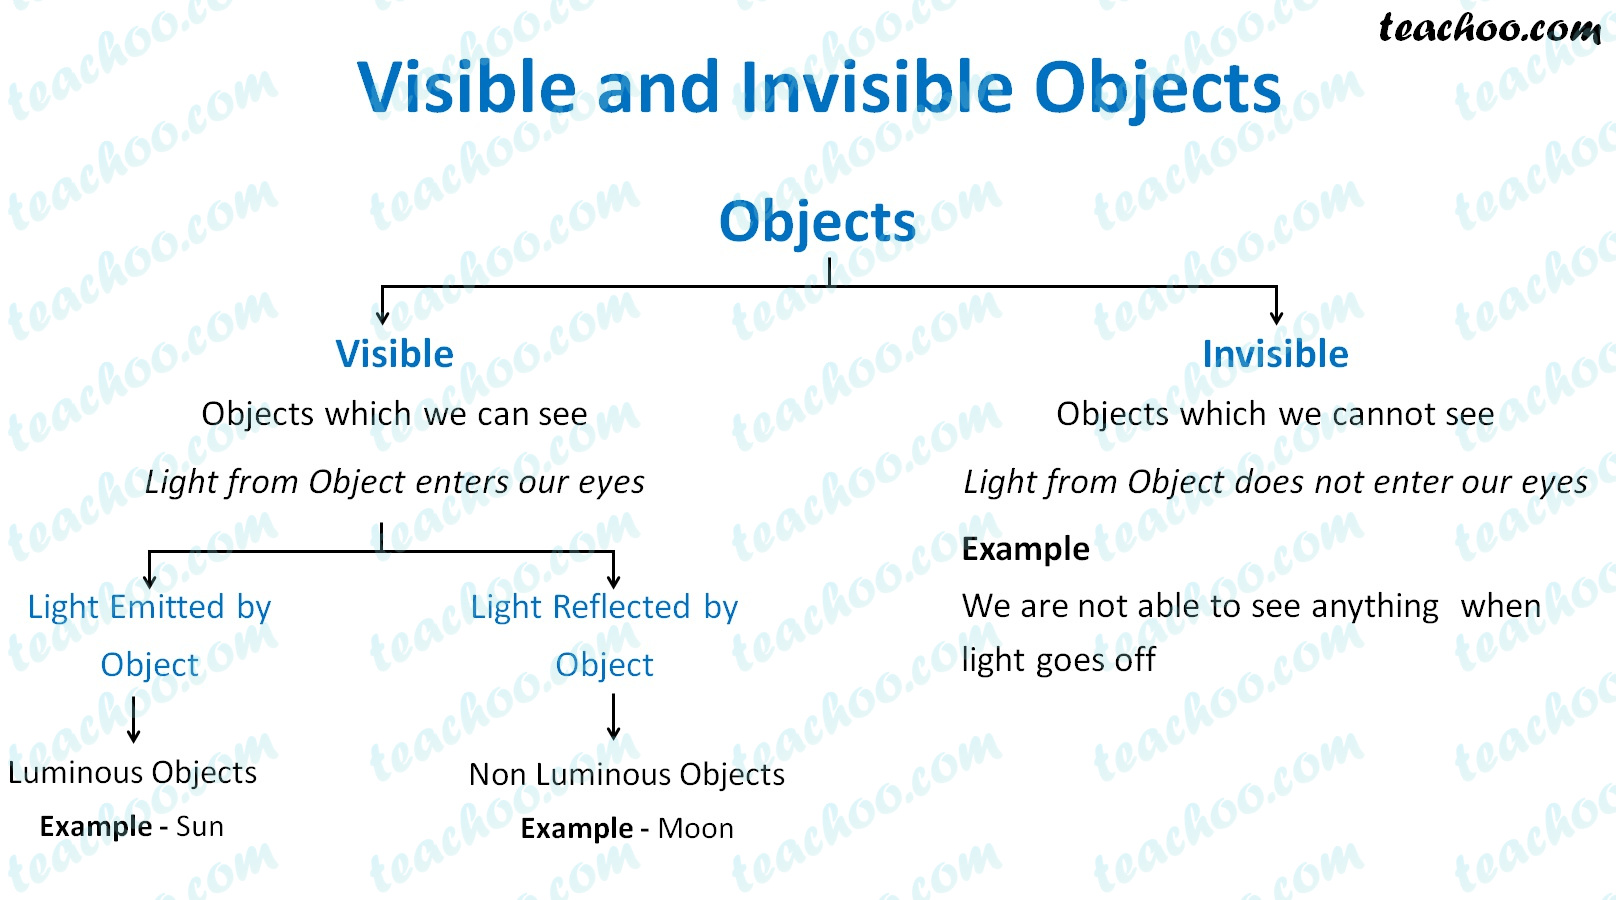 visible-and-invisible-objects---teachoo.jpg